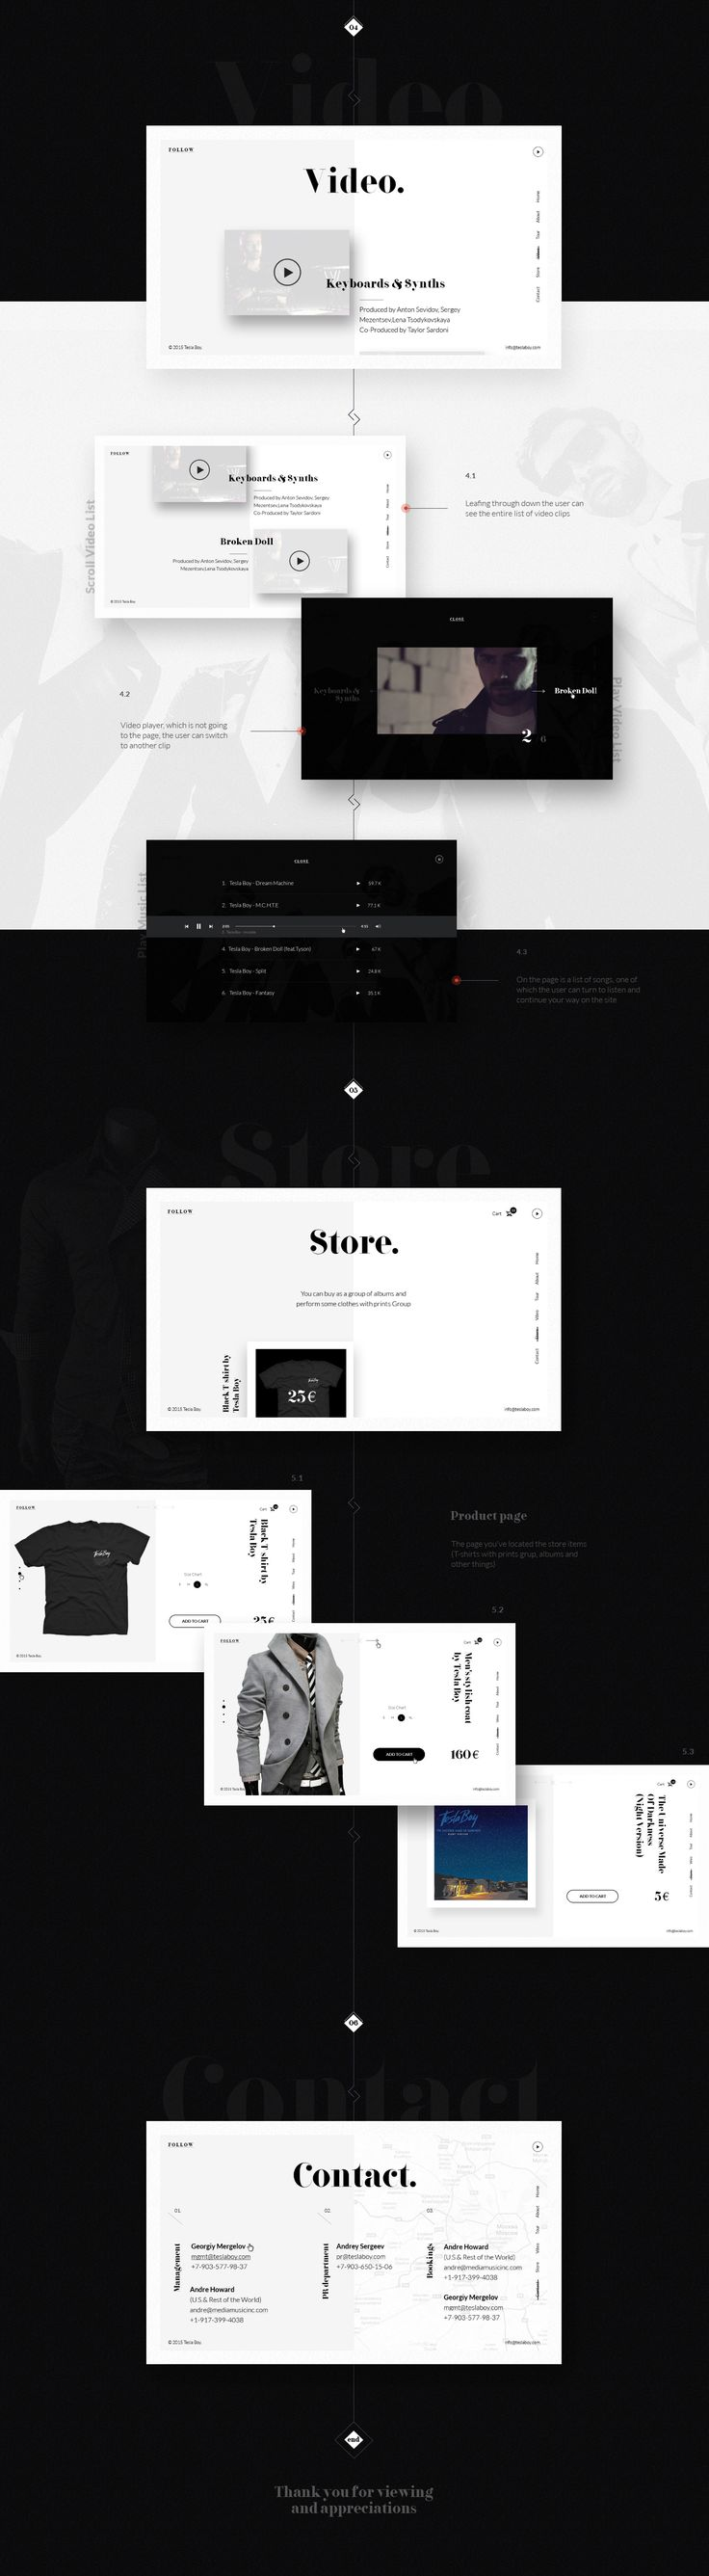 Tesla Boy - web site concept on Behance